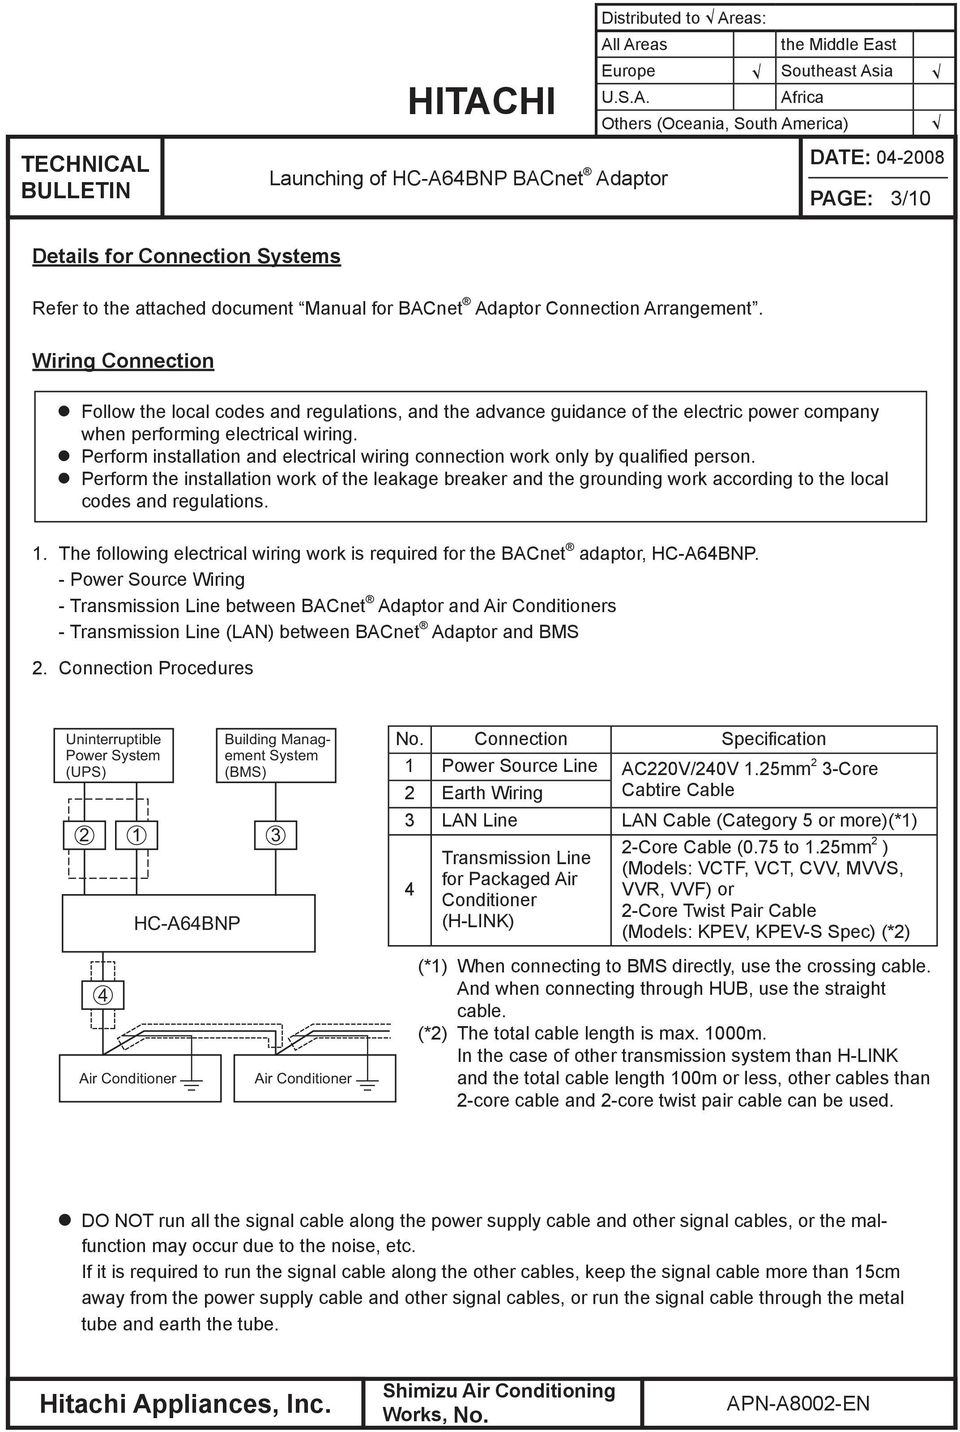 l Areas the Middle East Europe Southeast Asia U.S.A. Africa Others (Oceania, South America) TECHNICAL BULLETIN Launching of HC-A64BNP BACnet Adaptor DATE: 04-2008 PAGE: 3/10 Details for Connection